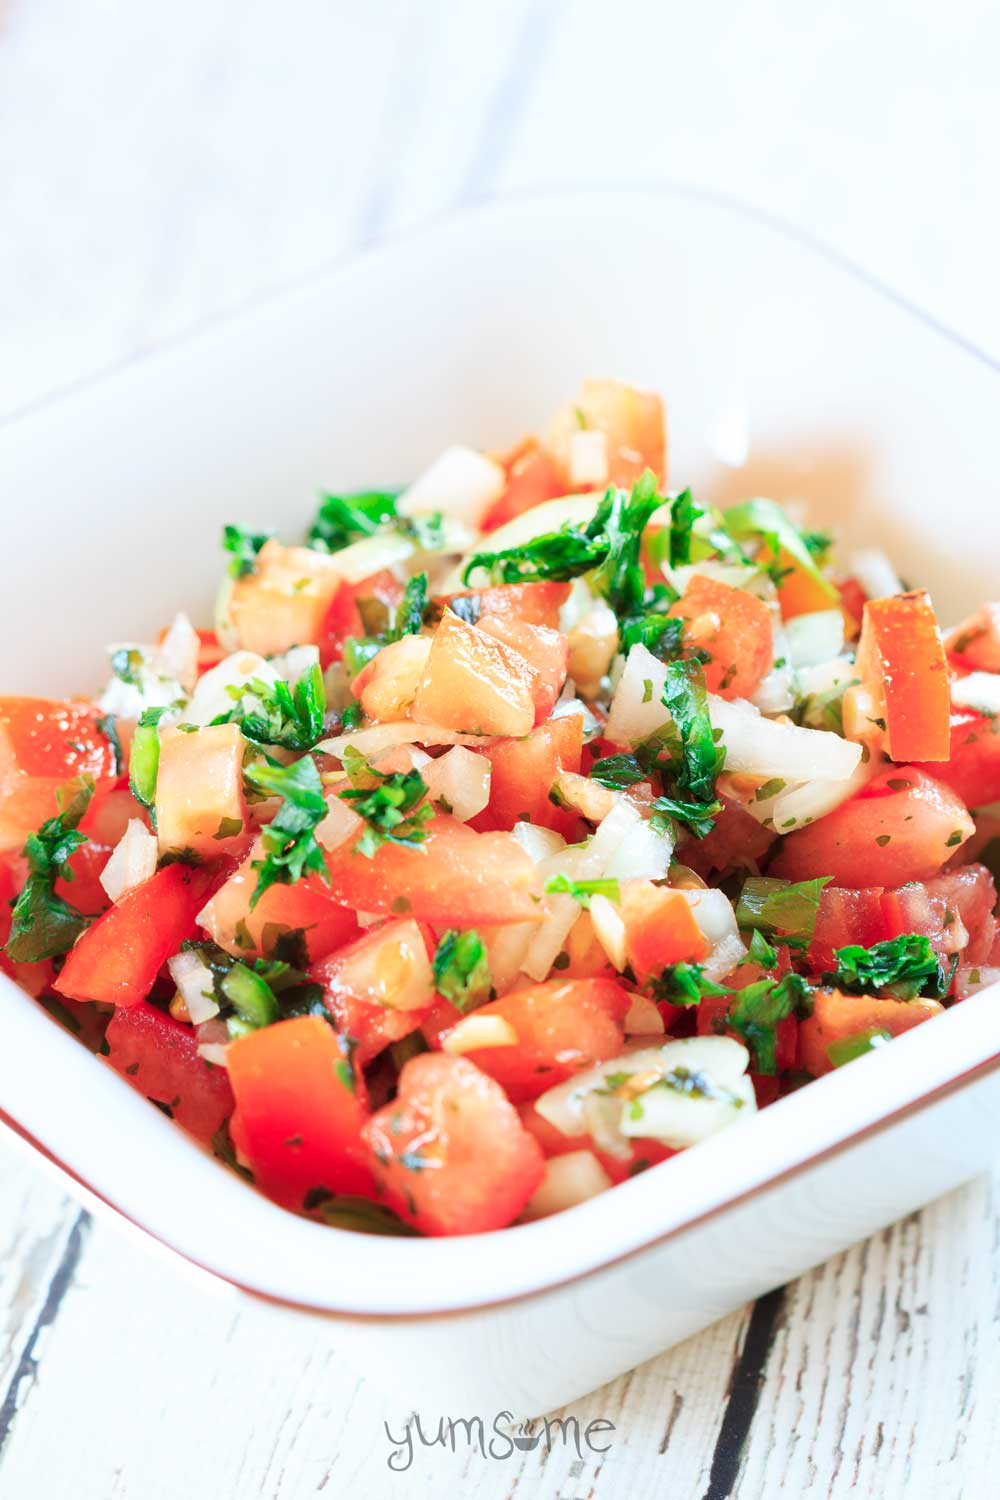 This refreshingly simple pico de gallo perfectly balances the sweetness of tomatoes and onions with the heat of chilli, and the sharpness of lime. | yumsome.com